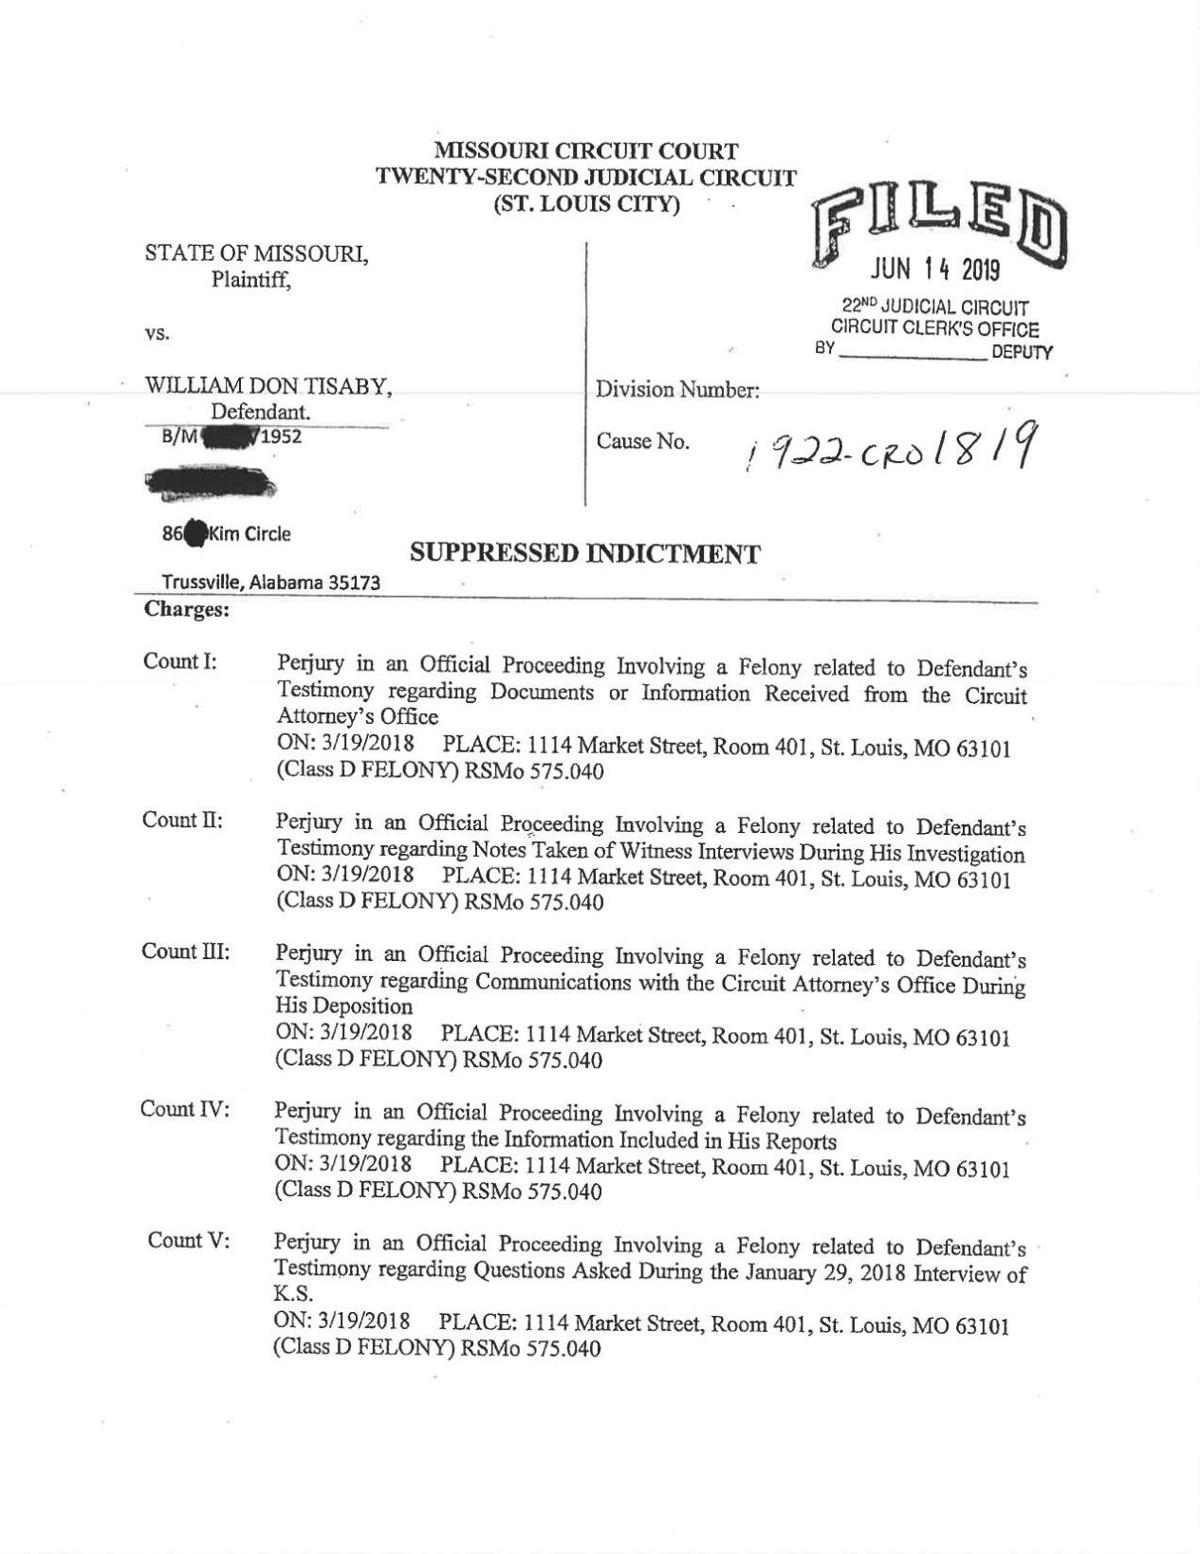 Perjury indictment of William Don Tisaby